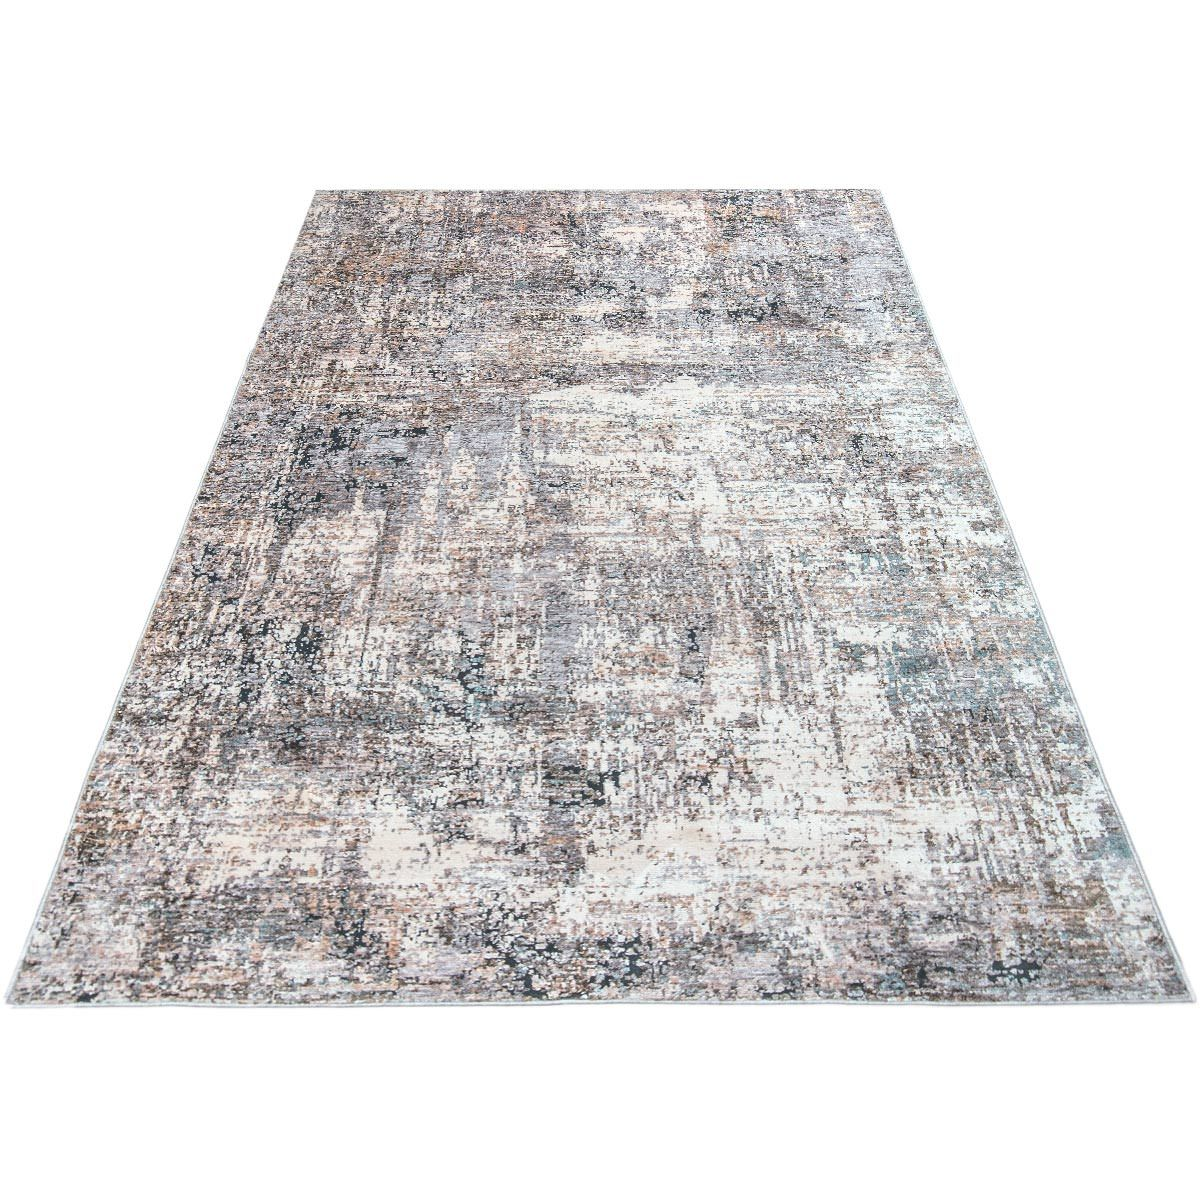 Miami Rug 04 Green/Blue/Beige 6